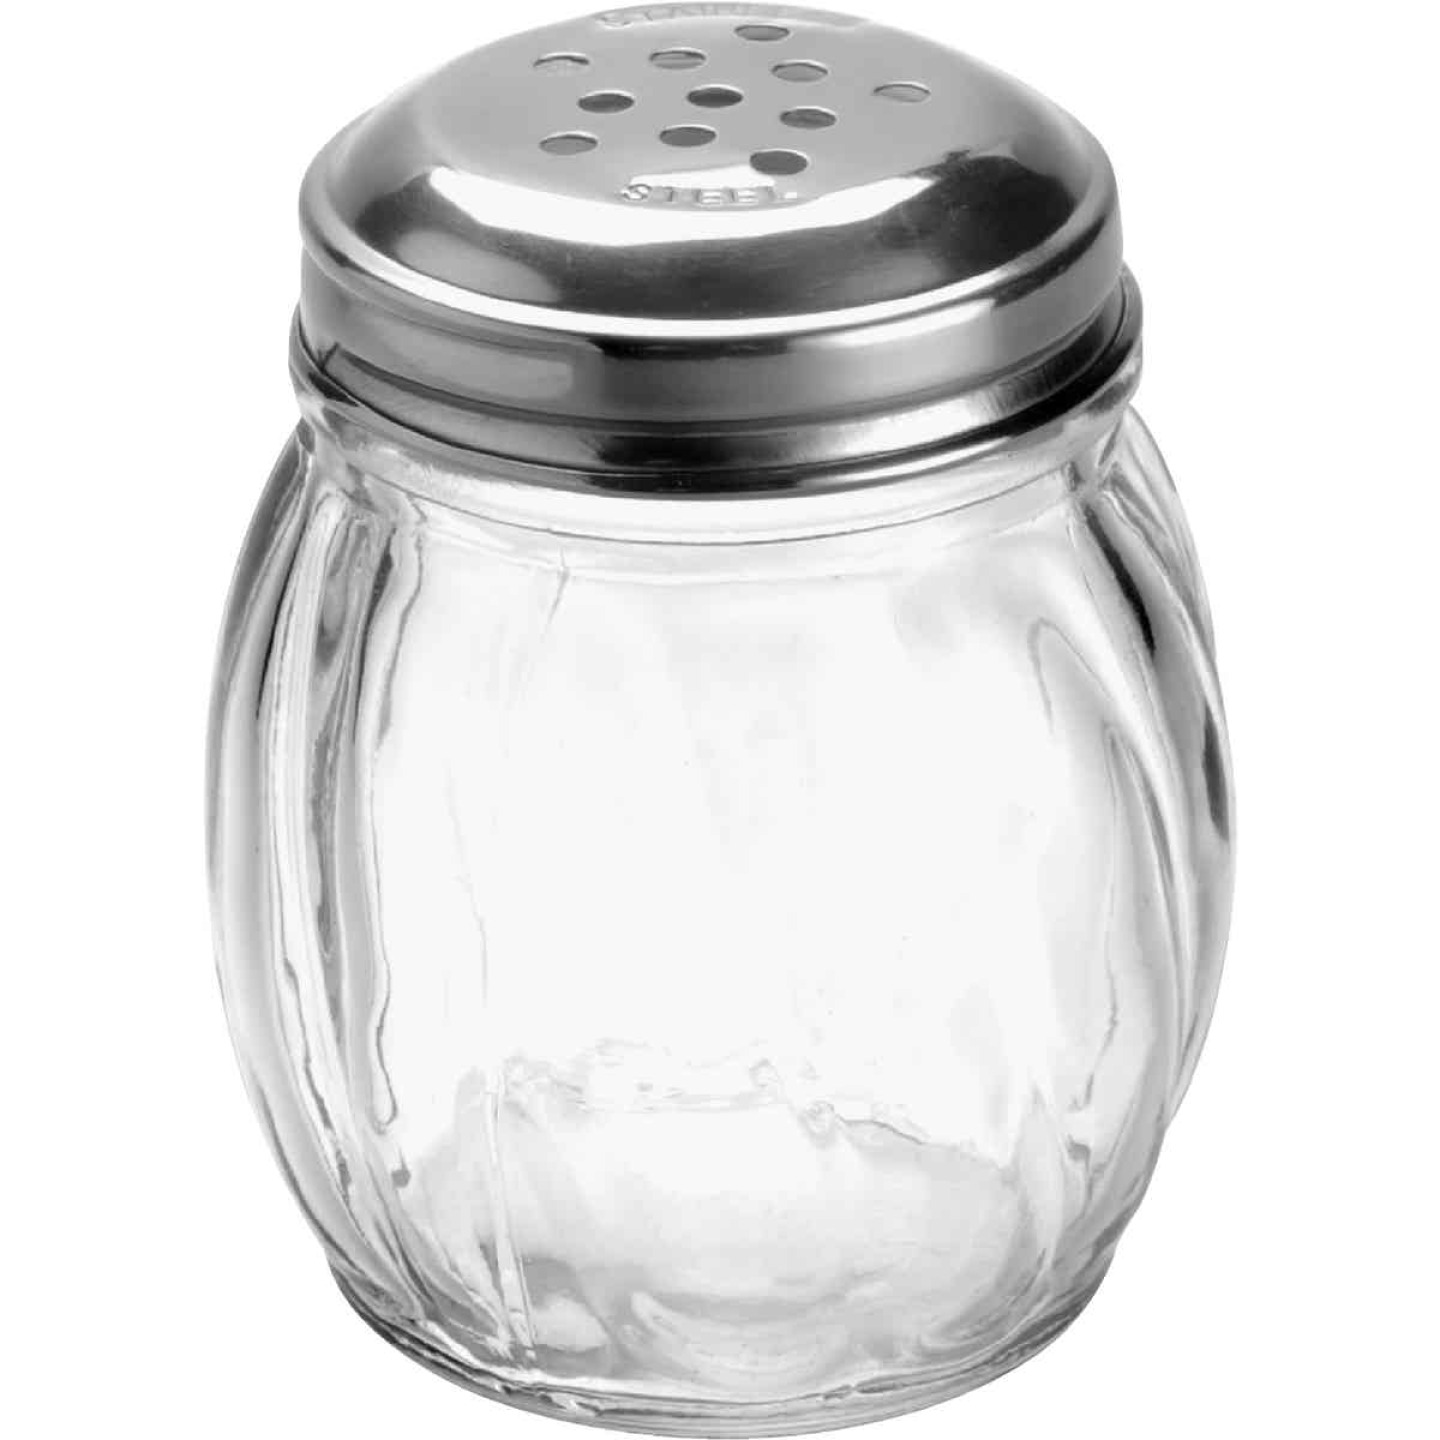 Gemco 5 Oz. Glass Cheese & Spice Shaker Image 1